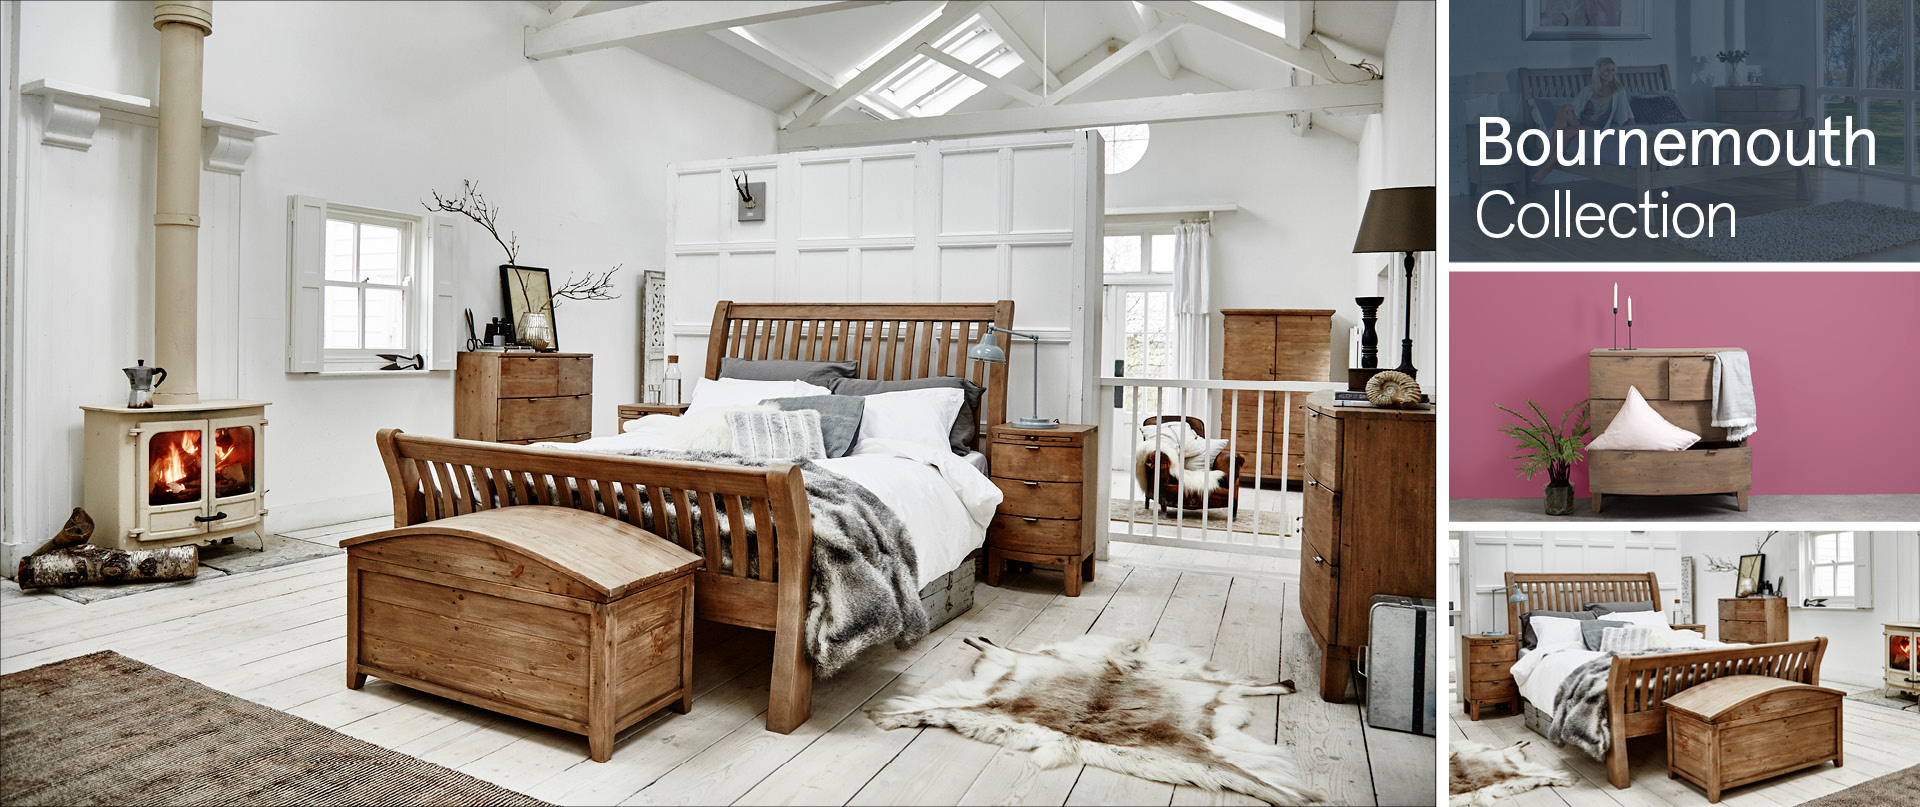 Bournemouth Bedroom Furniture Ranges